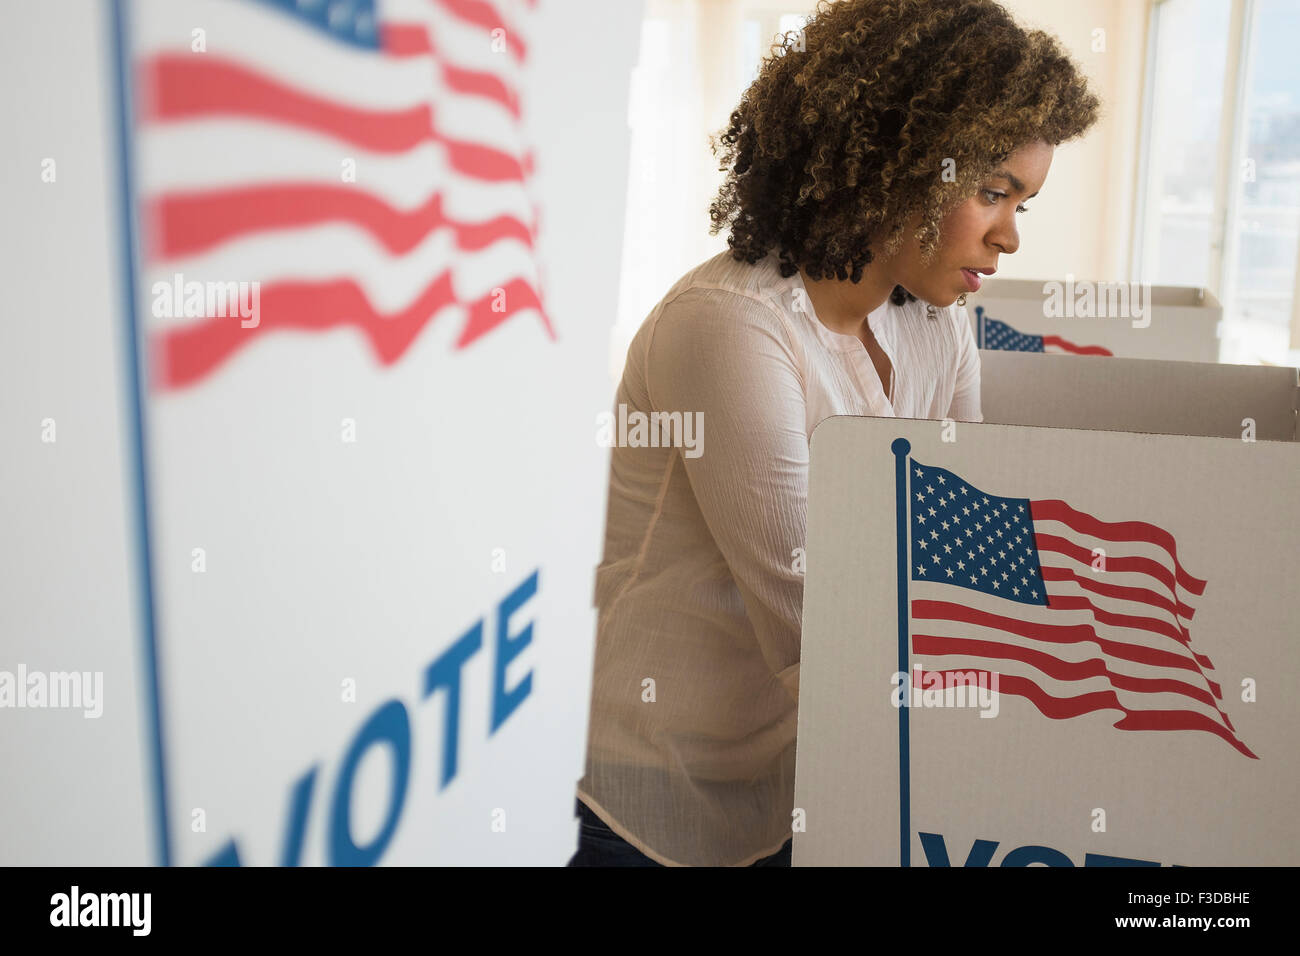 Young woman preparing voting booth - Stock Image